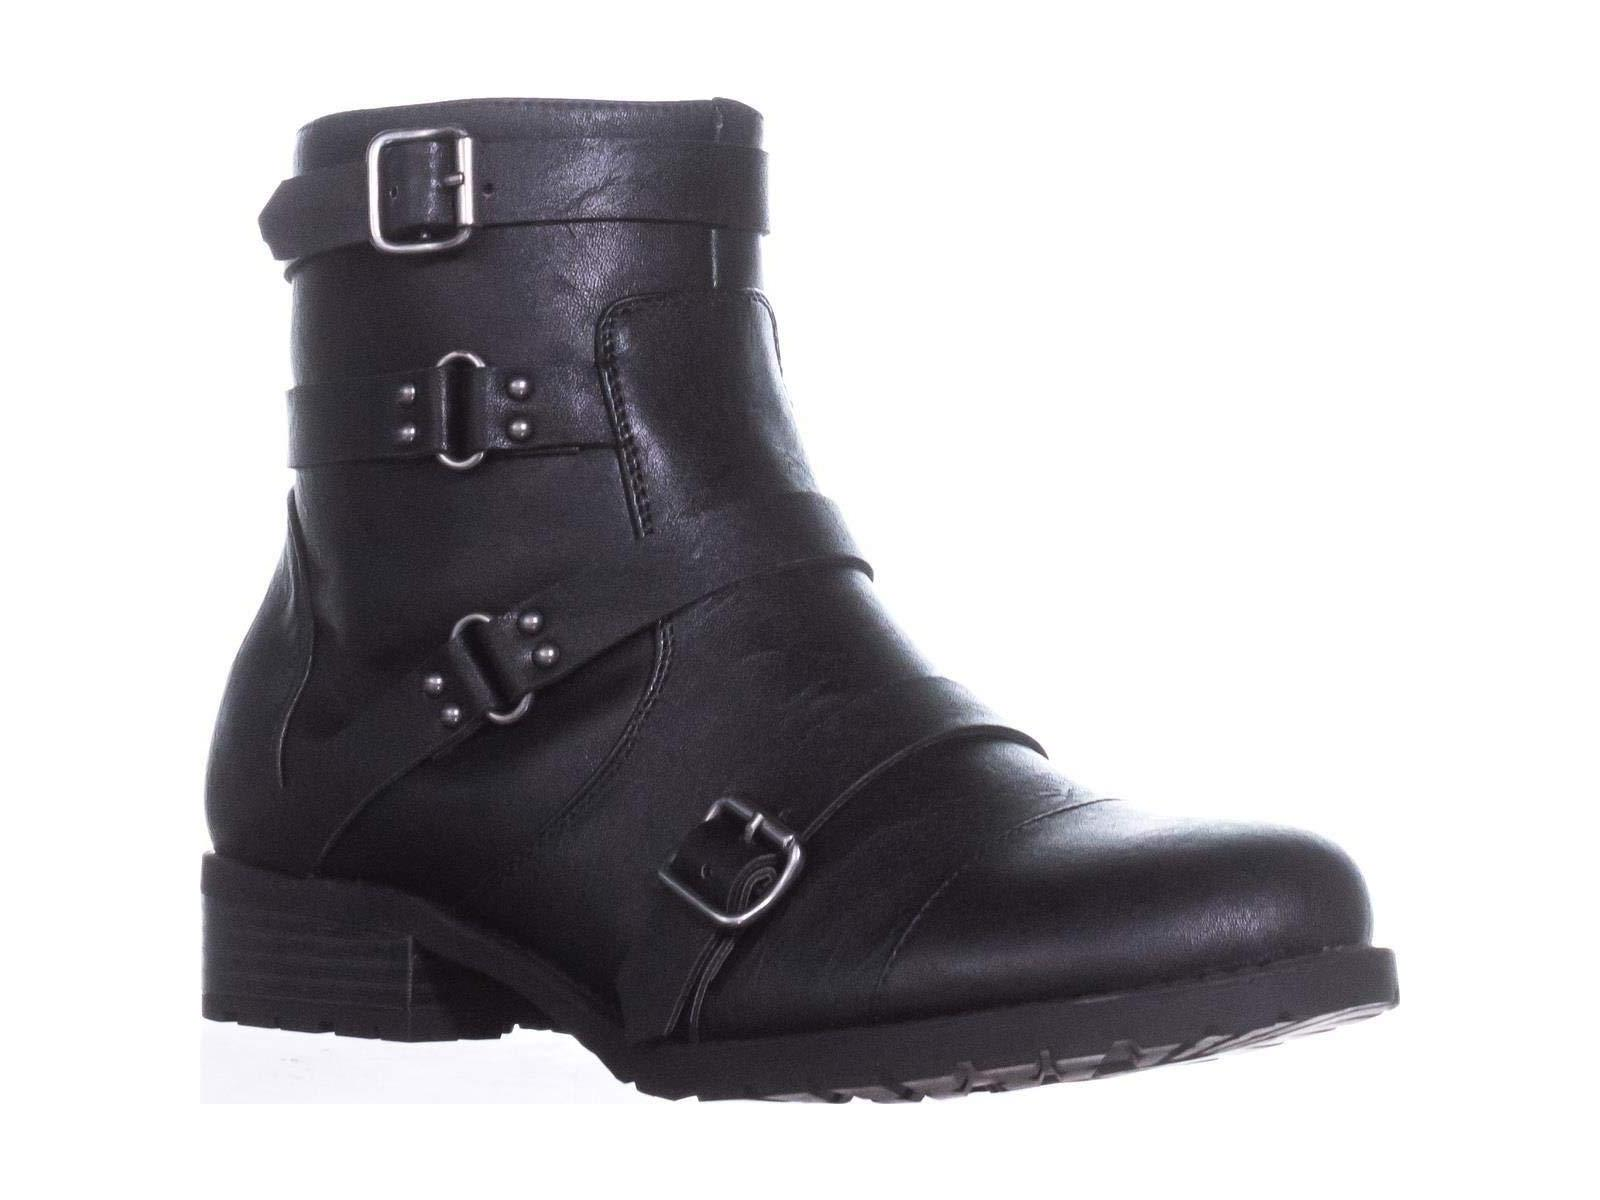 d414c77160bf G by Guess Womens Handsom Closed Toe Ankle Fashion Boots